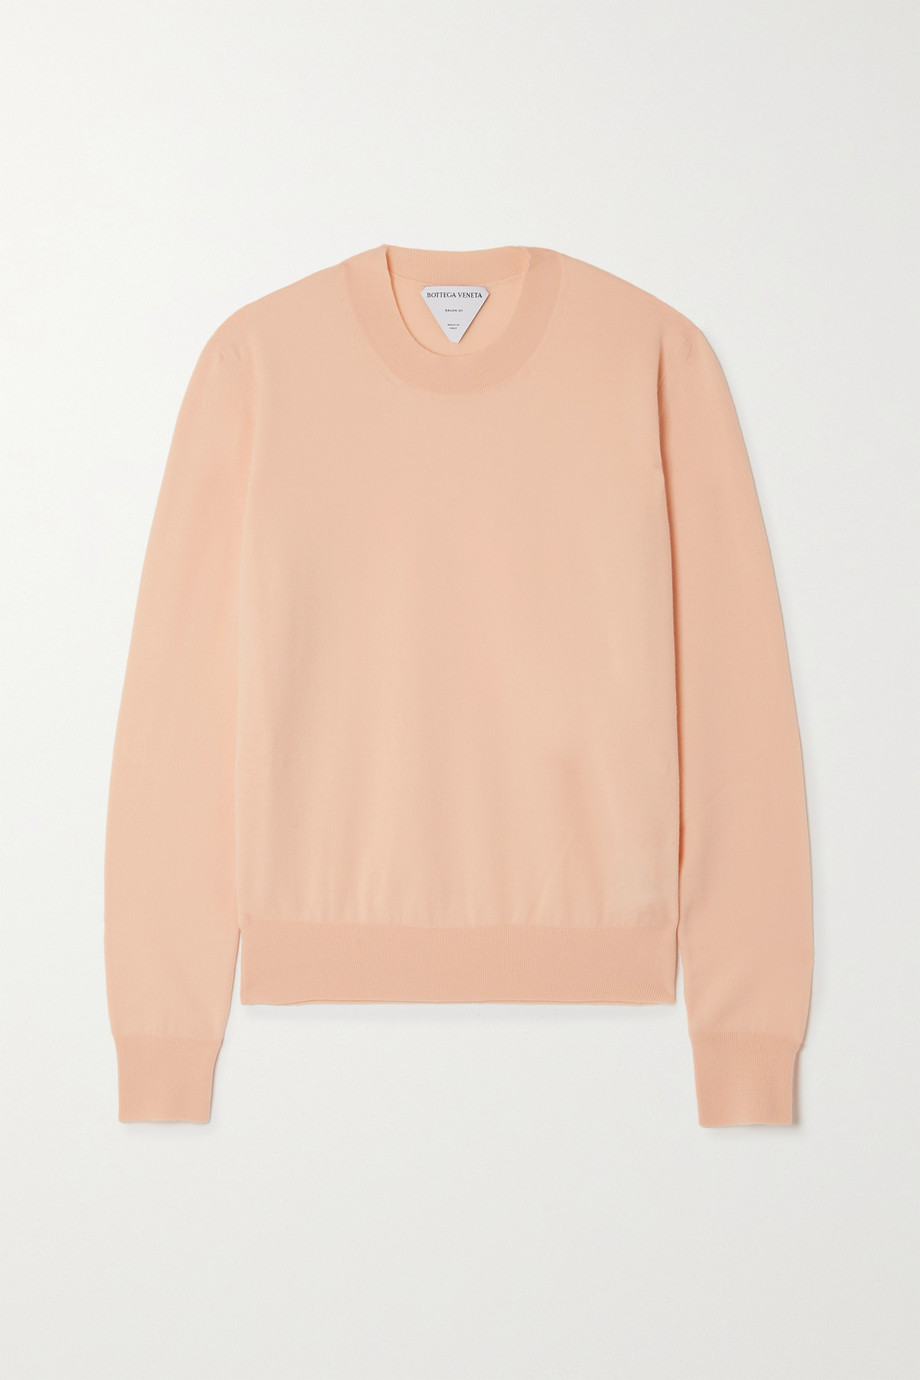 Bottega Veneta Cashmere-blend sweater